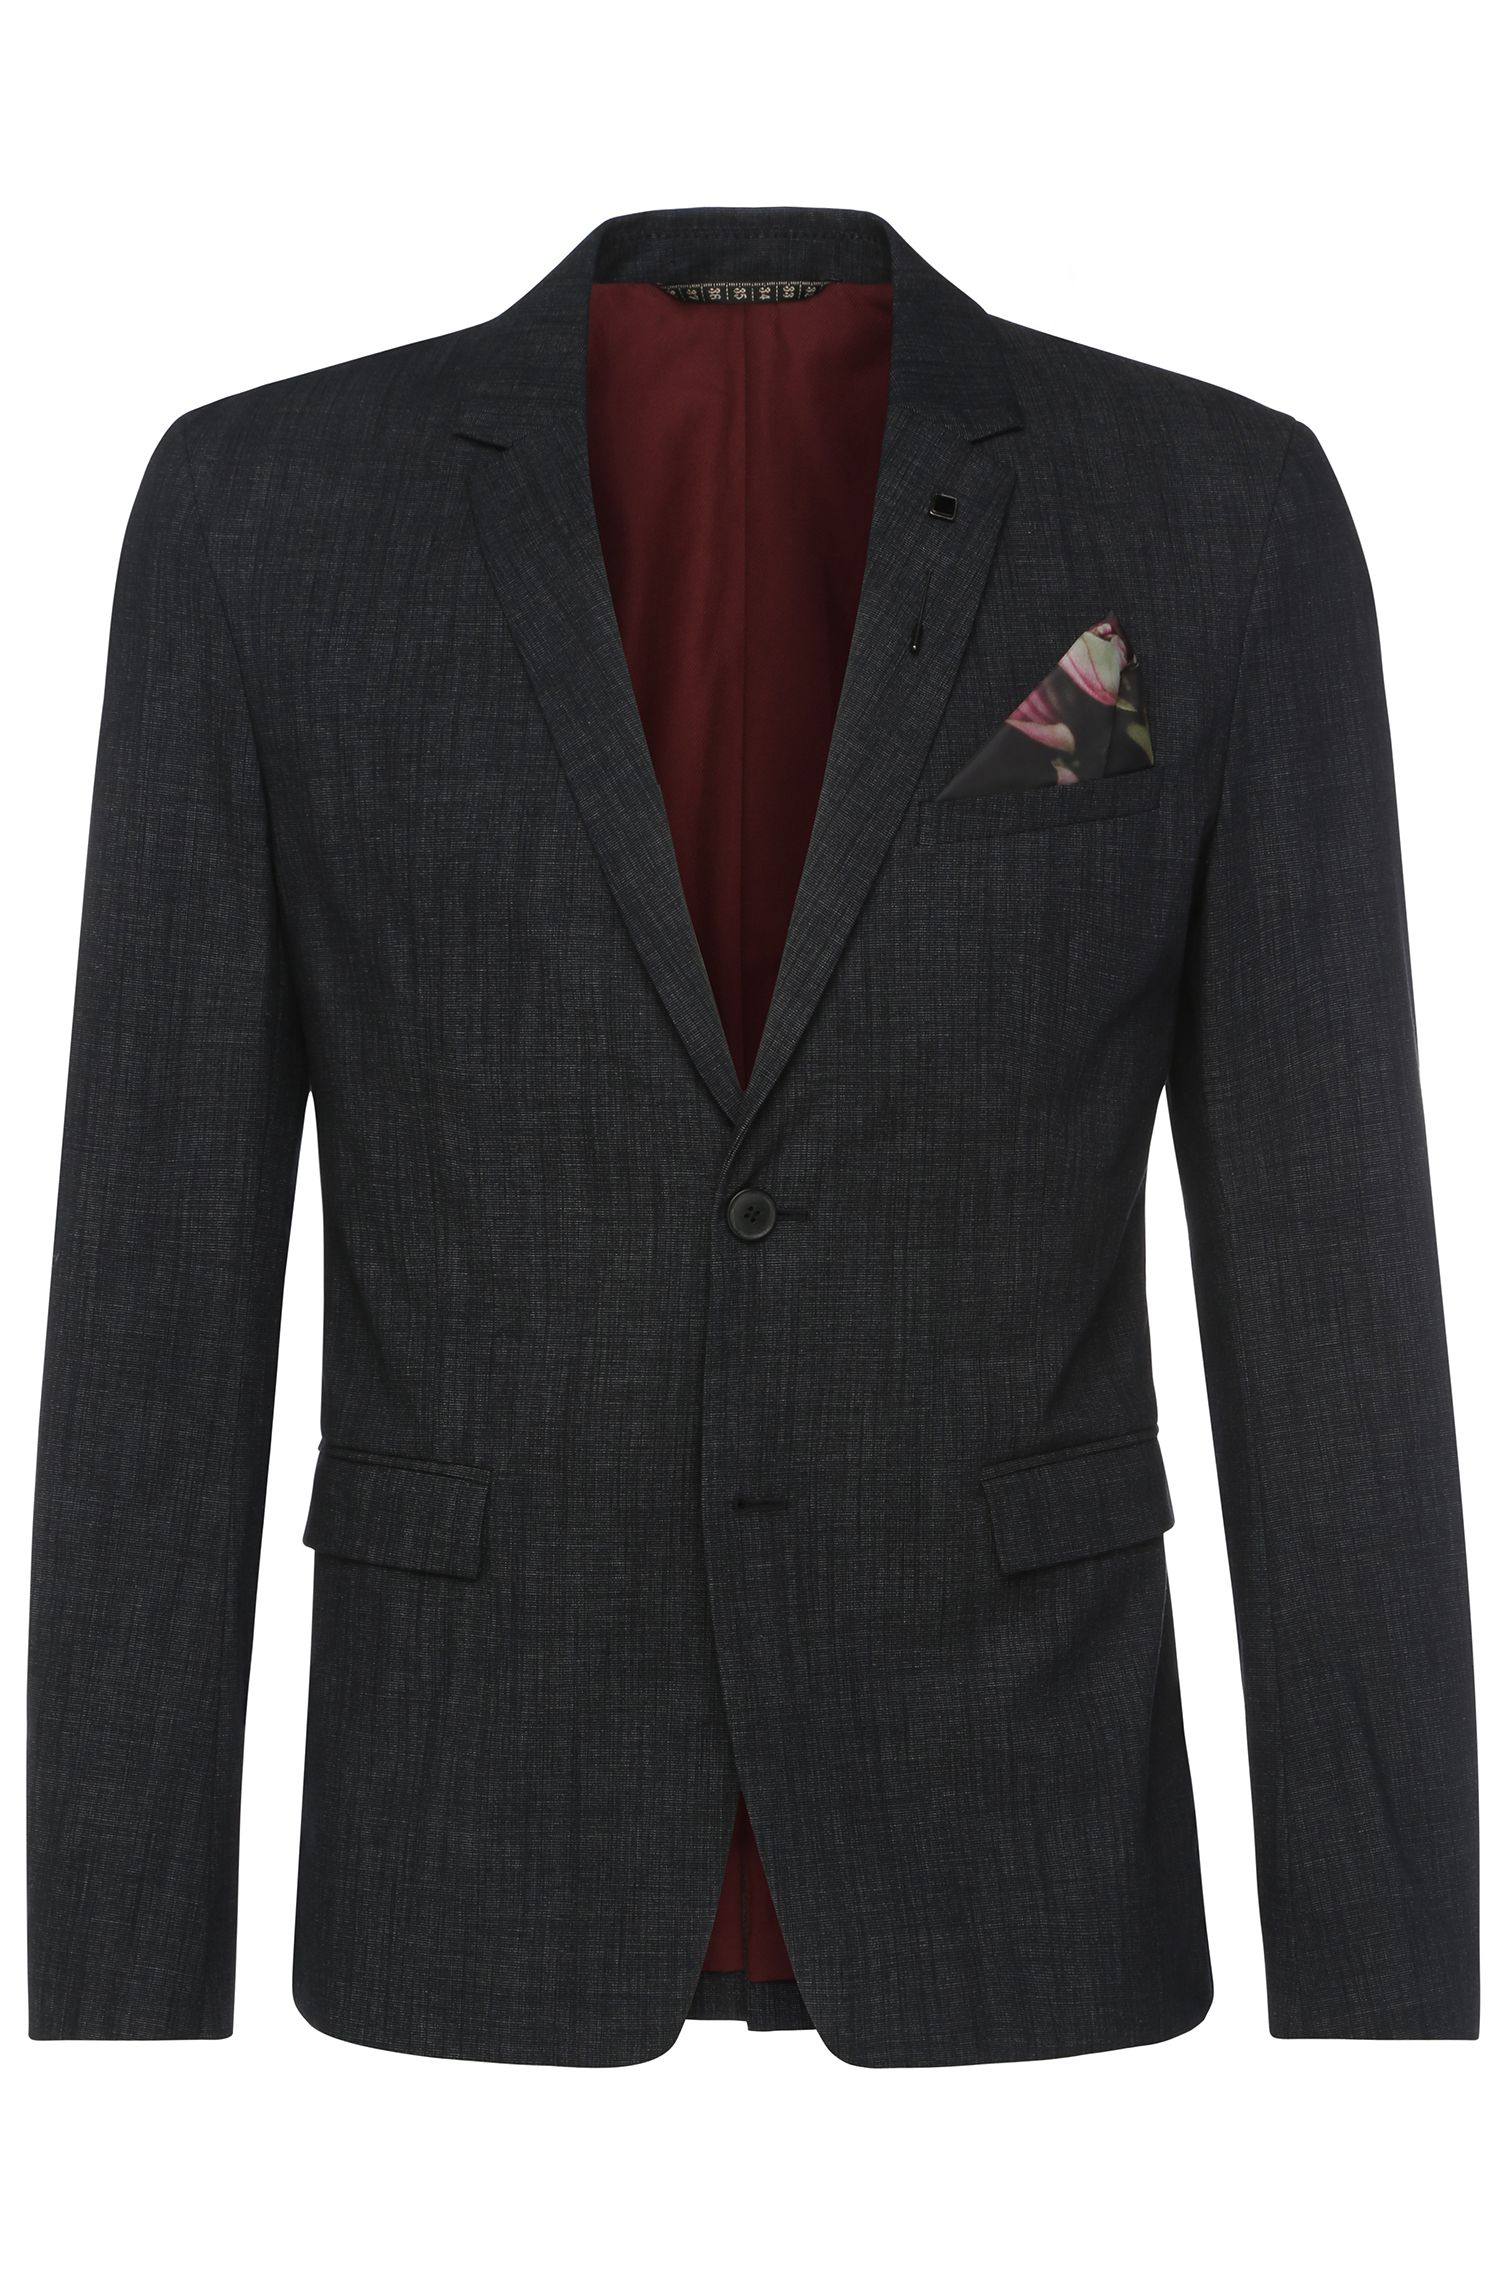 'Bistock BS' | Slim Fit, Stretch Cotton Blend Sport Coat, Pin, Pocket Square